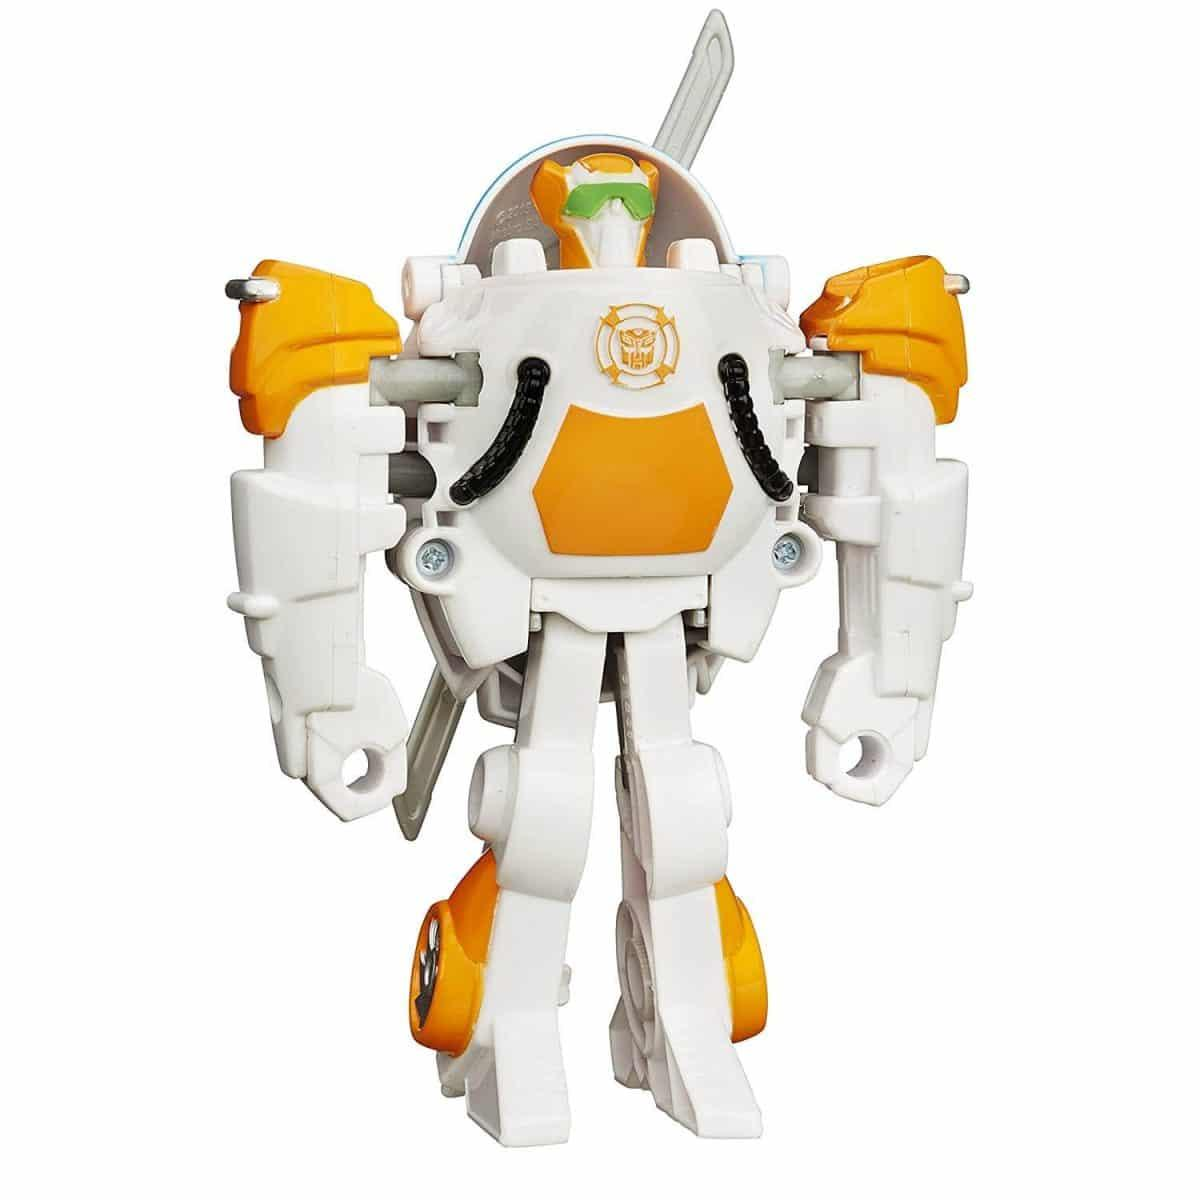 Playschool Heros Transformers Rescue Bots Rescan Blades Action Figure